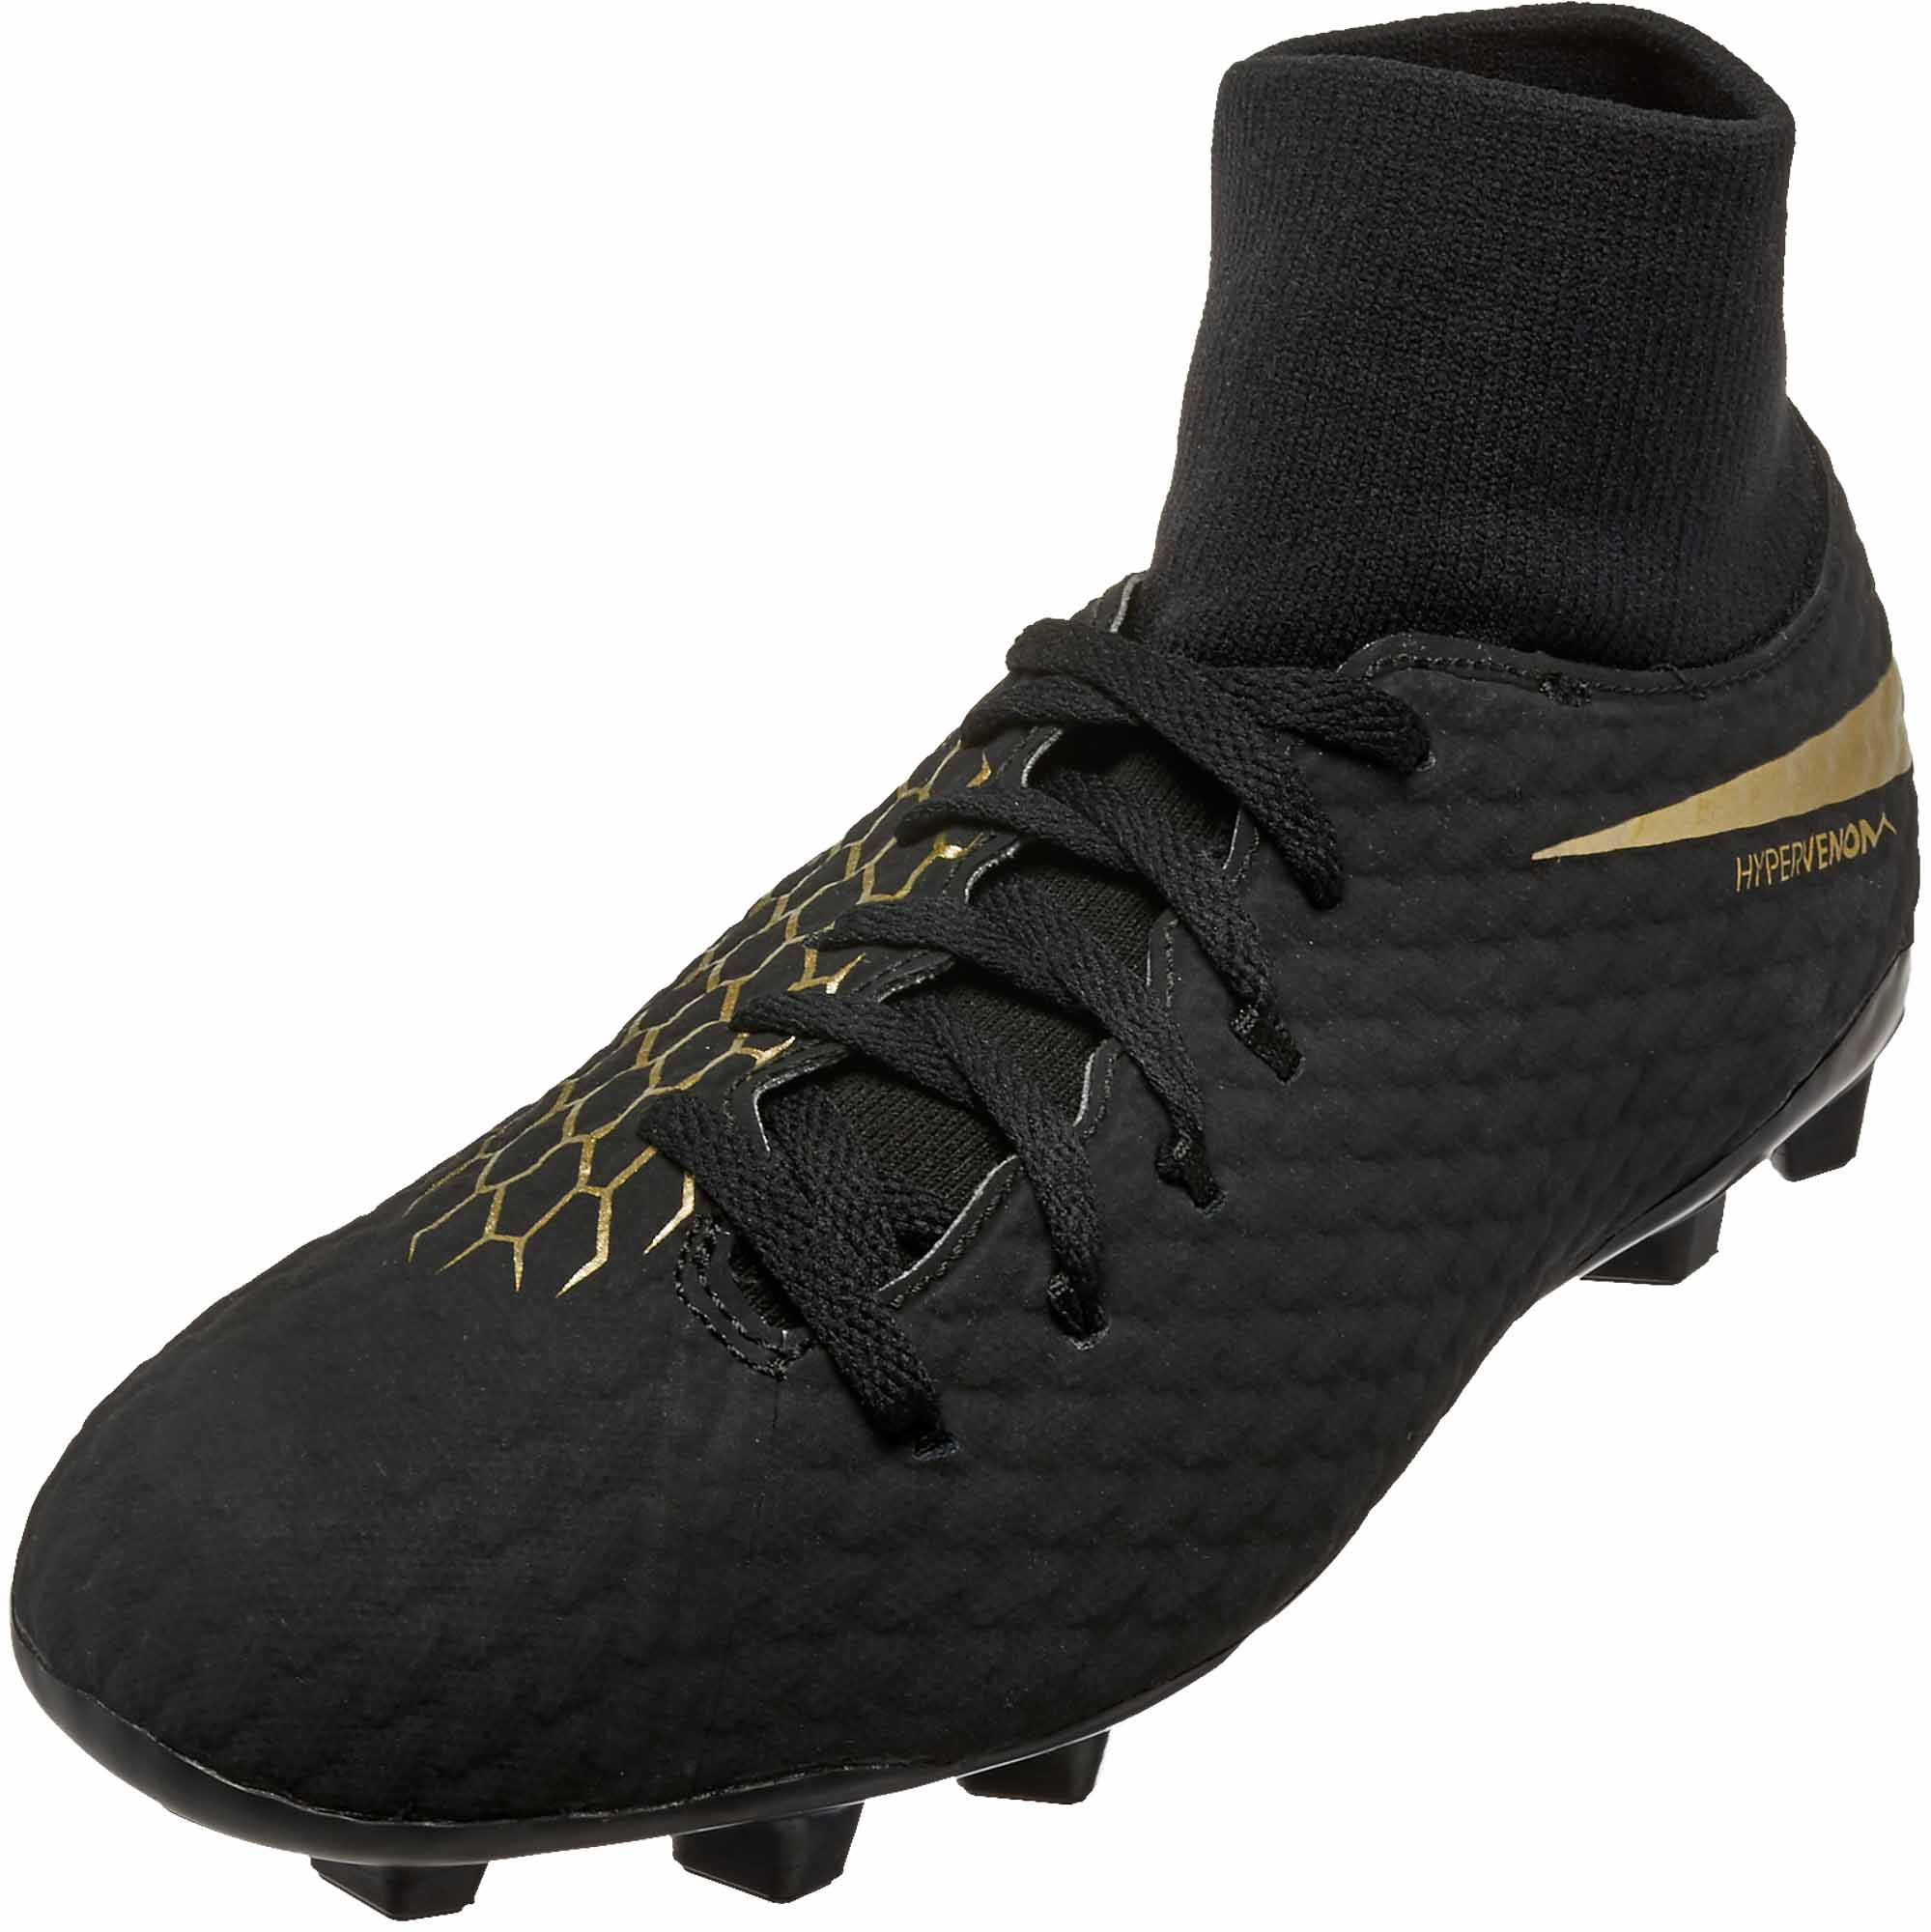 e8b2bc3d381a Nike Hypervenom Phantom III Academy DF FG – Youth – Black Metallic Vivid  Gold